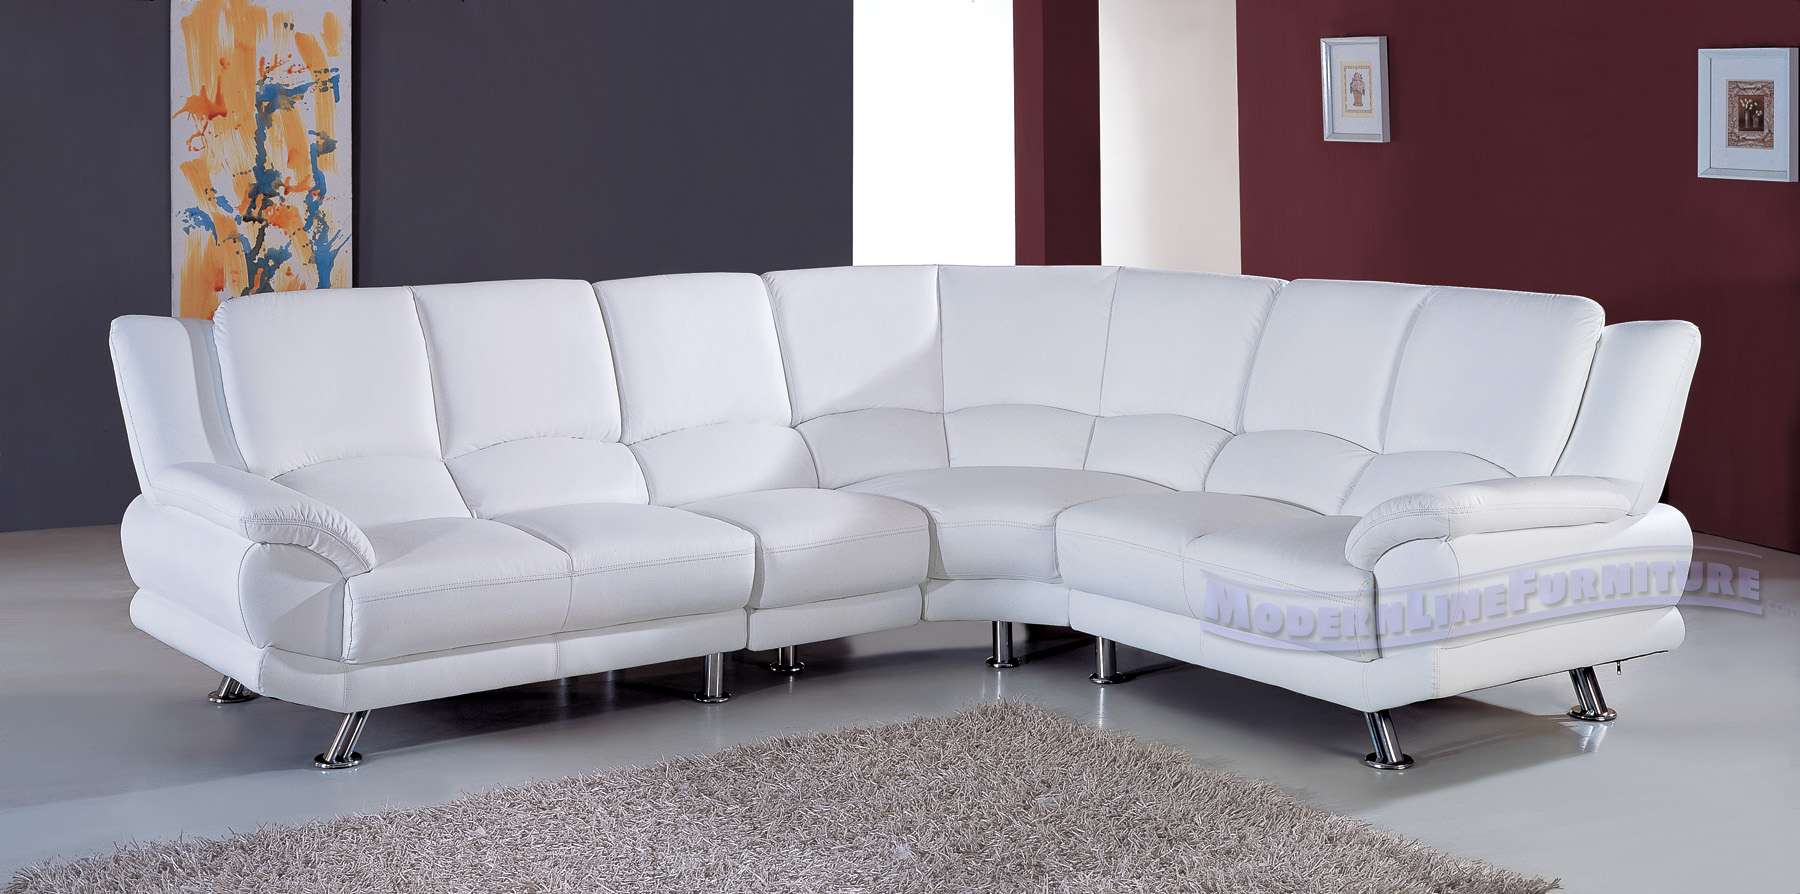 White Sofas With Unique Ambiance: Modern White Leather Sectional Sofa